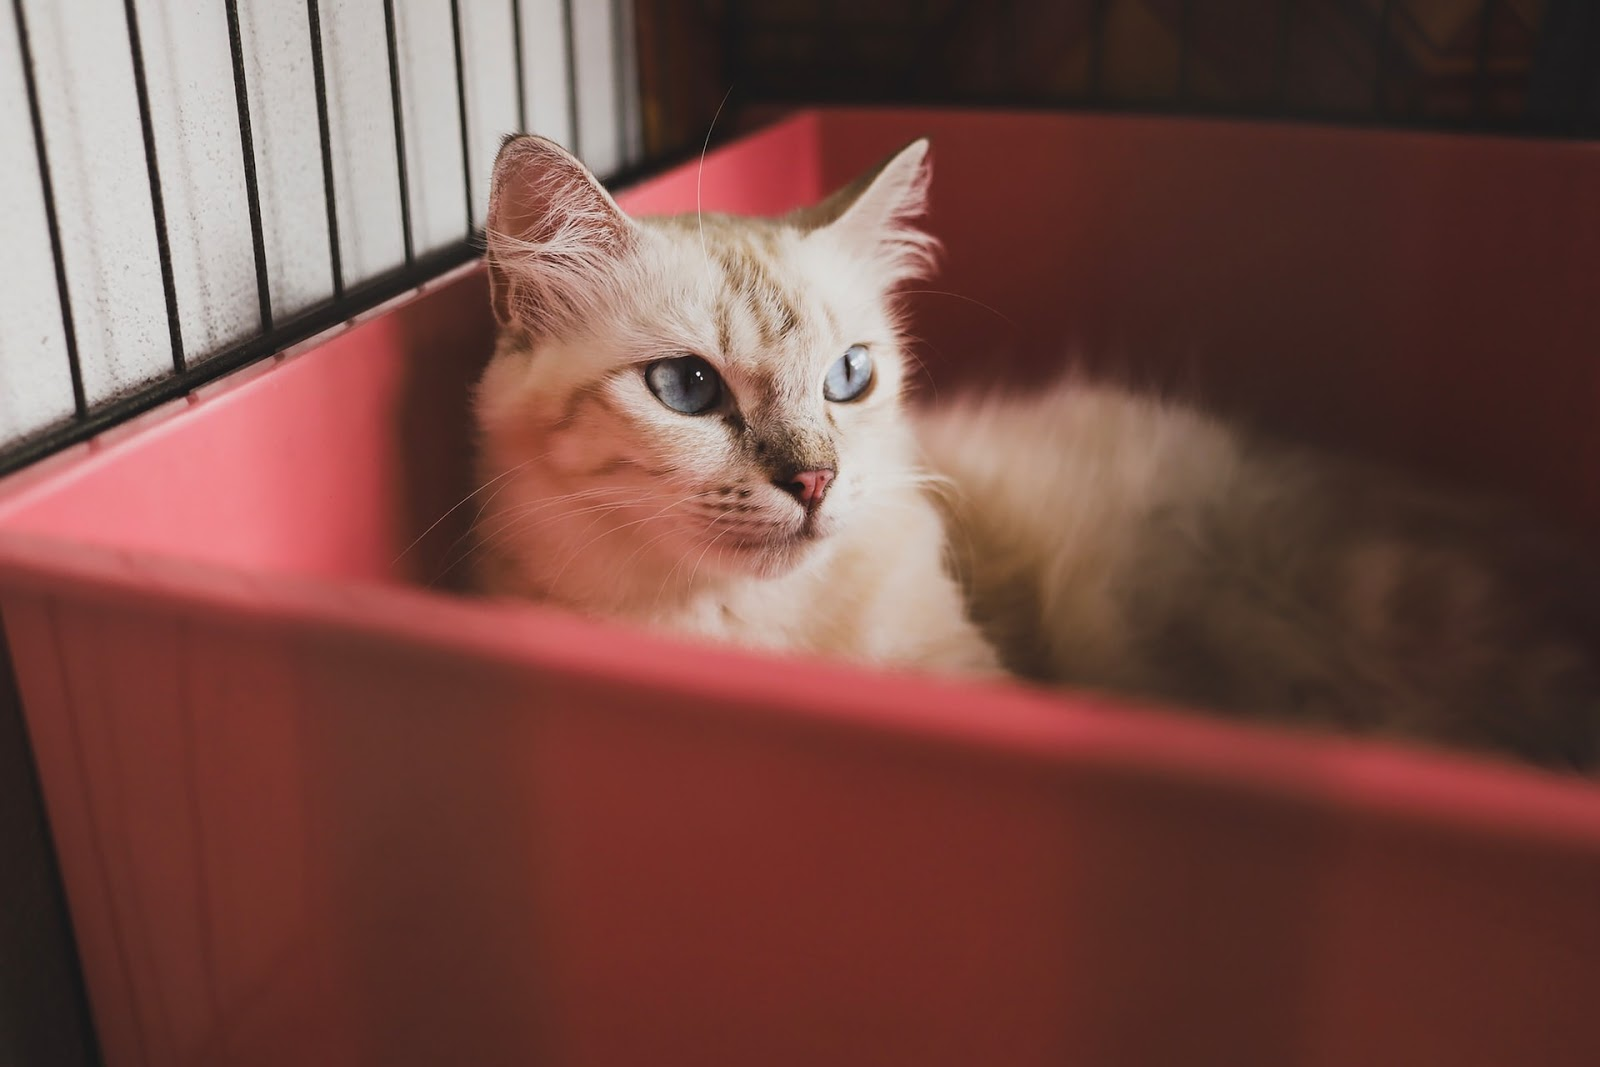 A blonde cat is laying down in a plastic red bin